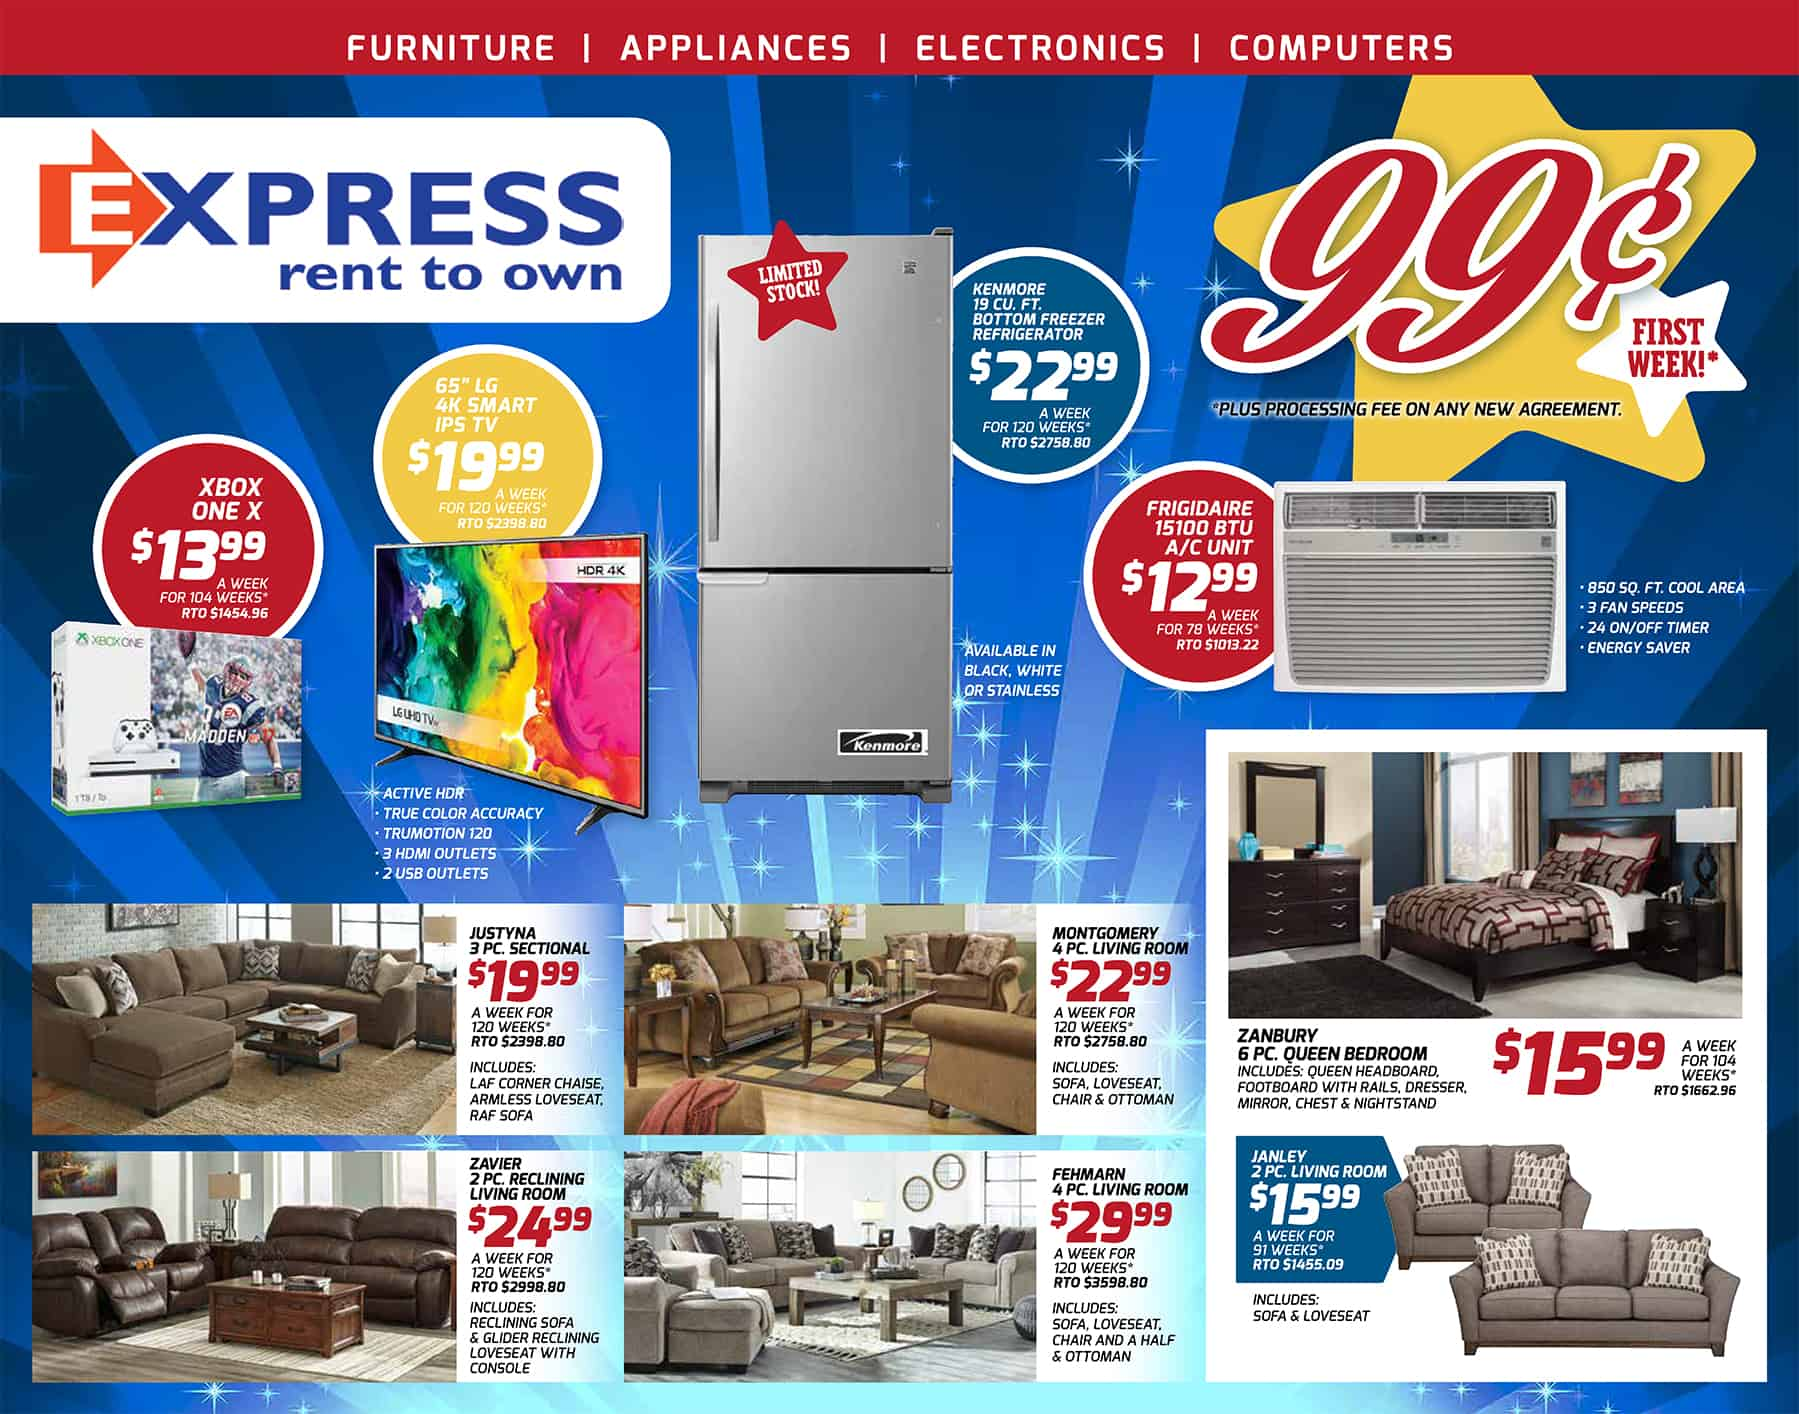 stores furniture dazzling for aaron your size rent to aarons residence king sets own bedroom intended design